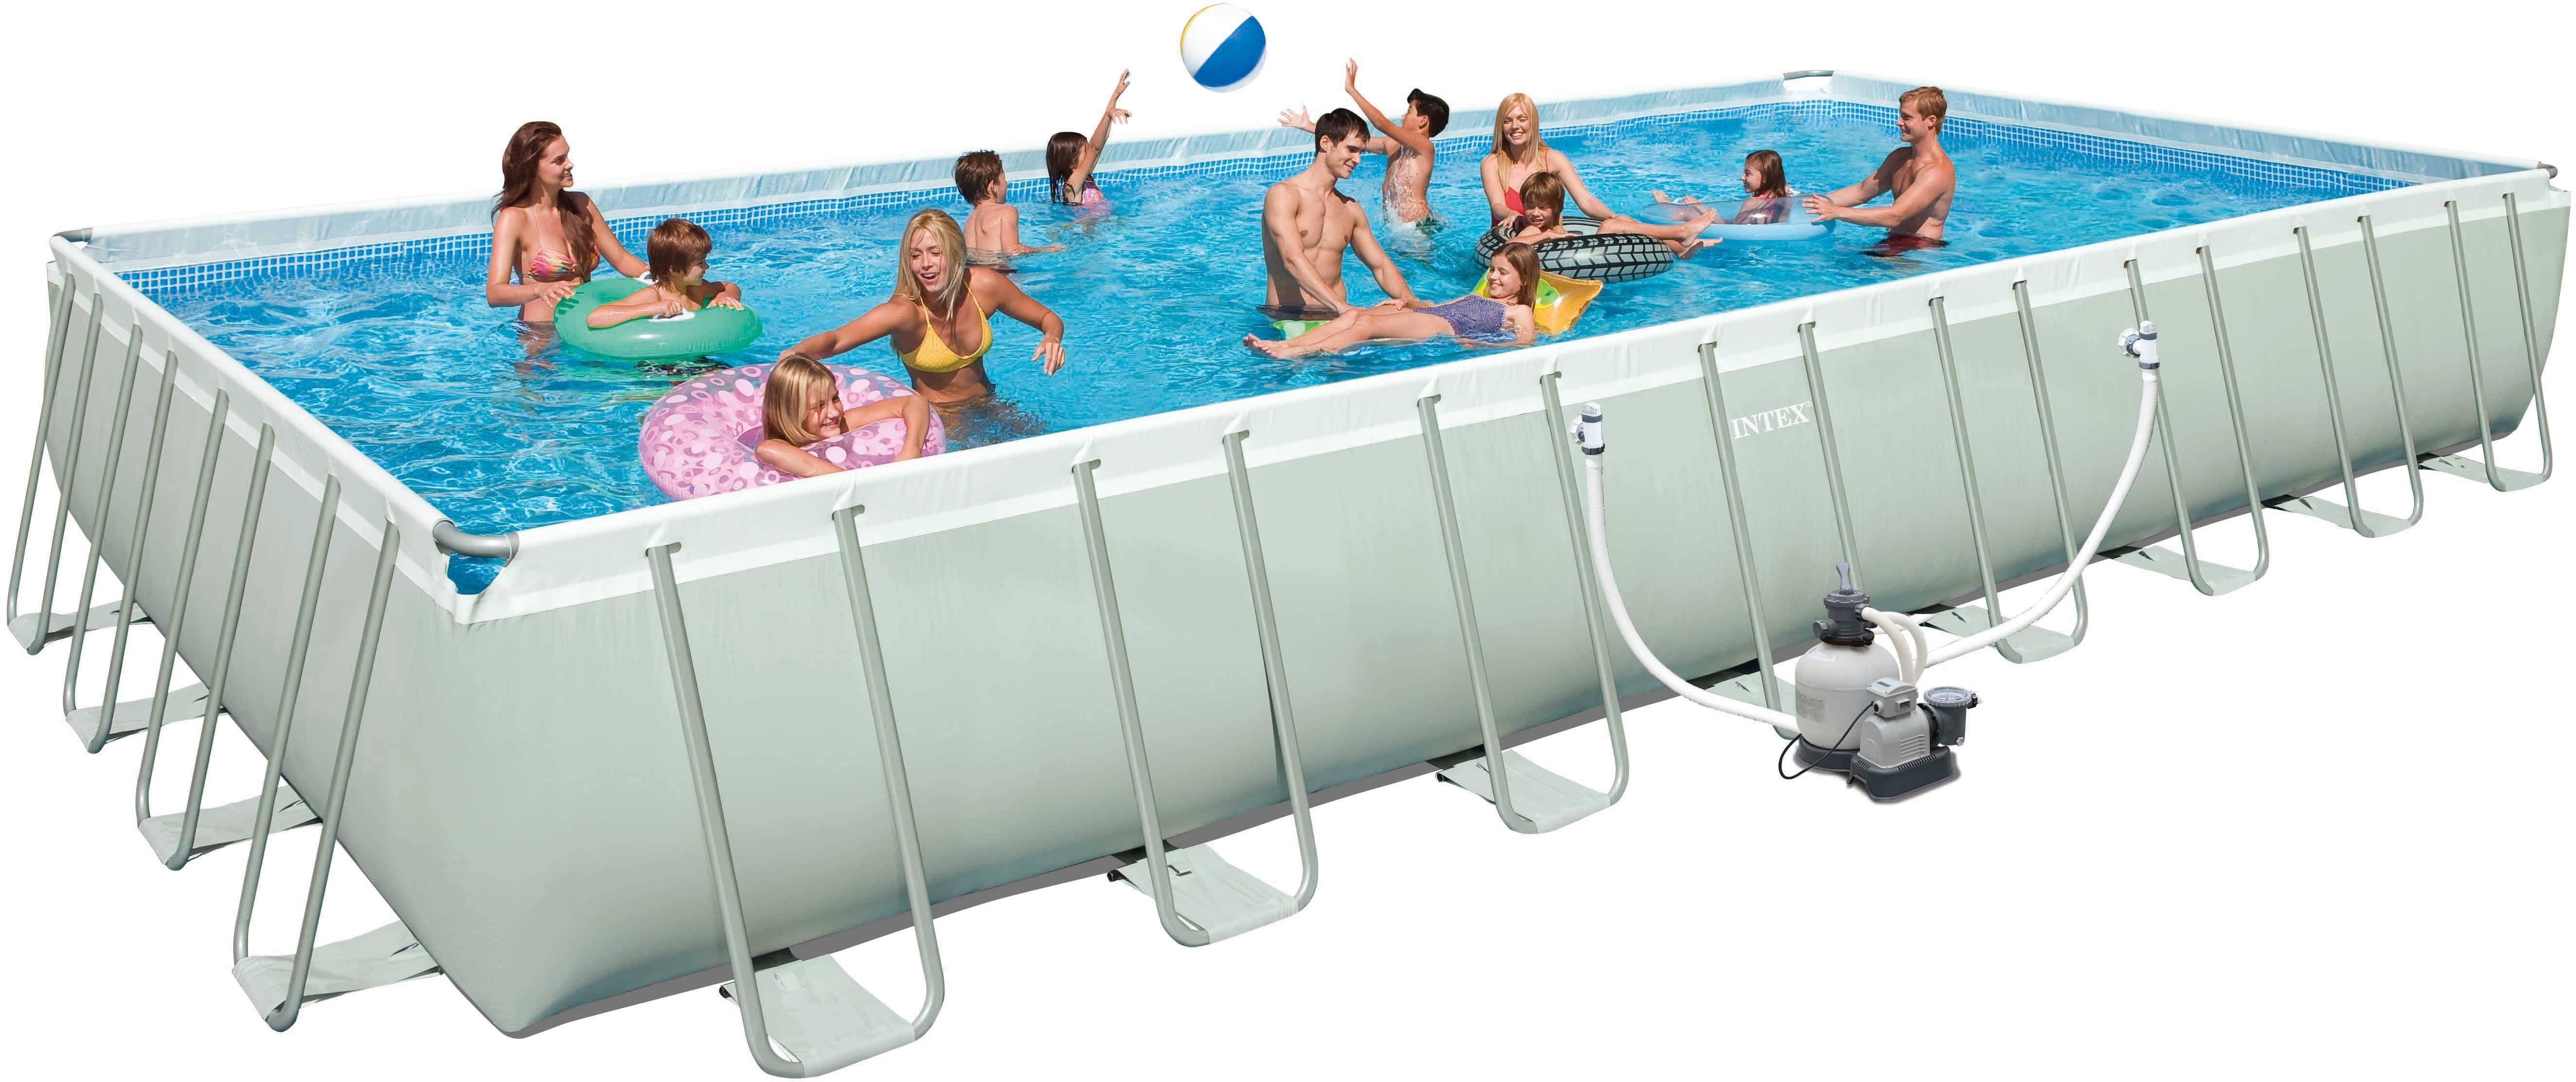 Pool Komplettset Otto Komplett Pool Kaufen Fabulous Foto Compas Pools With